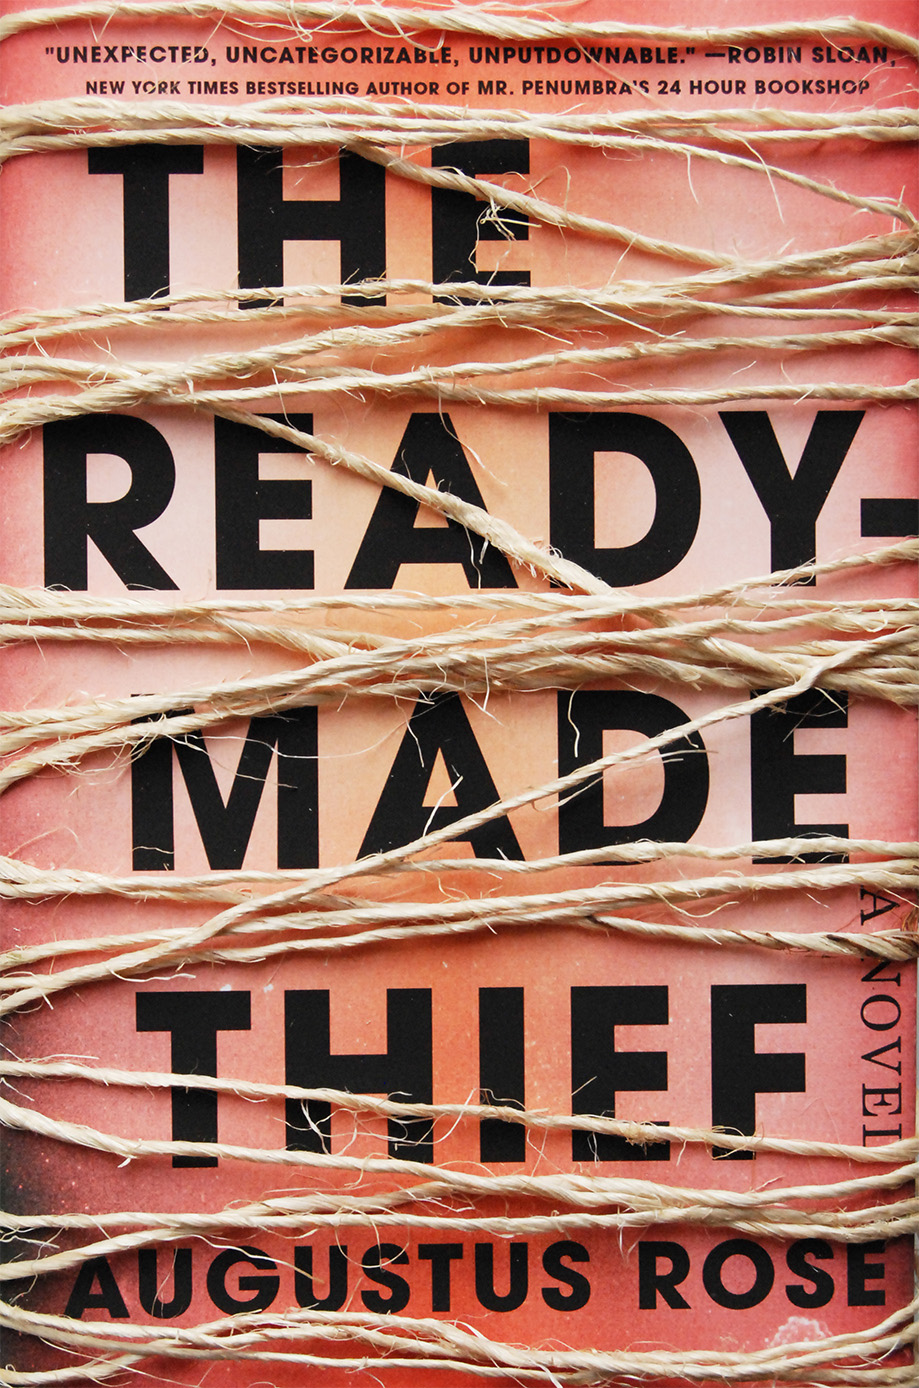 The Ready-Made Thief  by Augustus Rose  Viking --- August 1, 2017